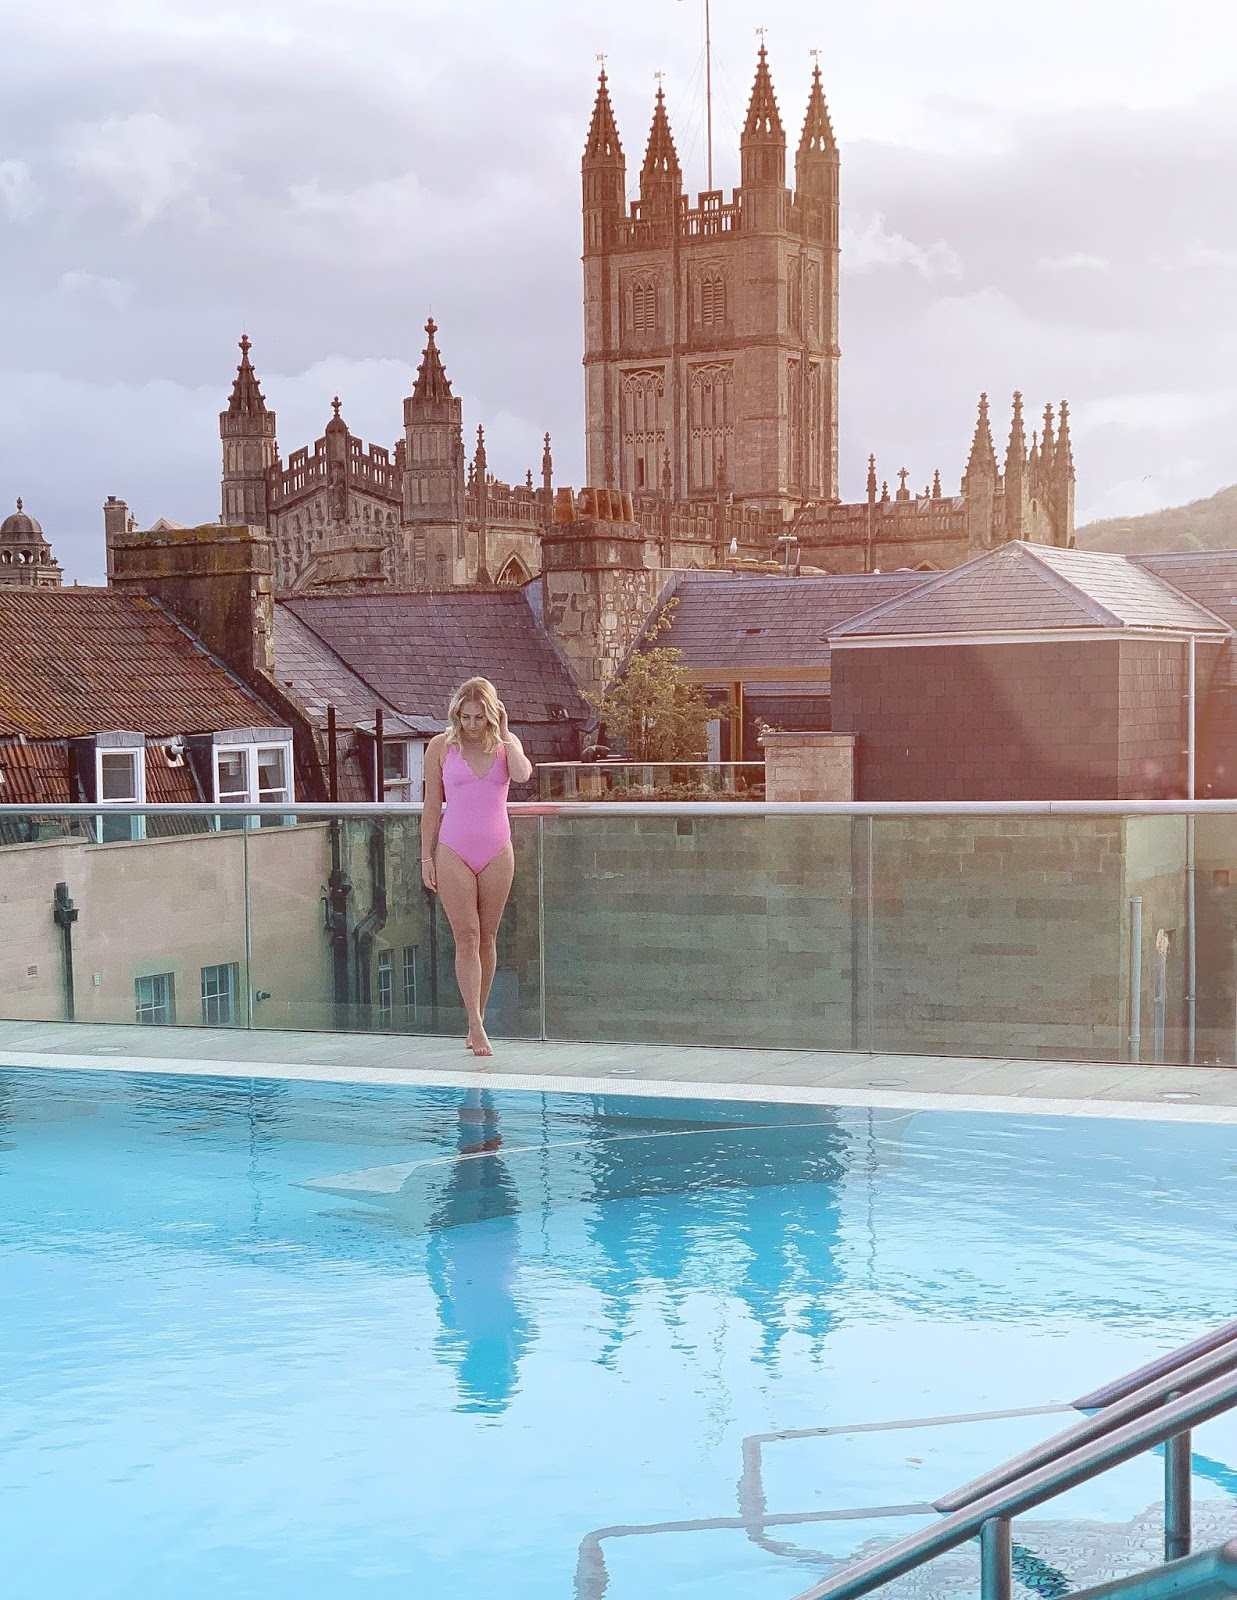 Rachel Emily on the Rooftop Pool at Thermae Bath Spa with the Cathedral in the background and sunrise